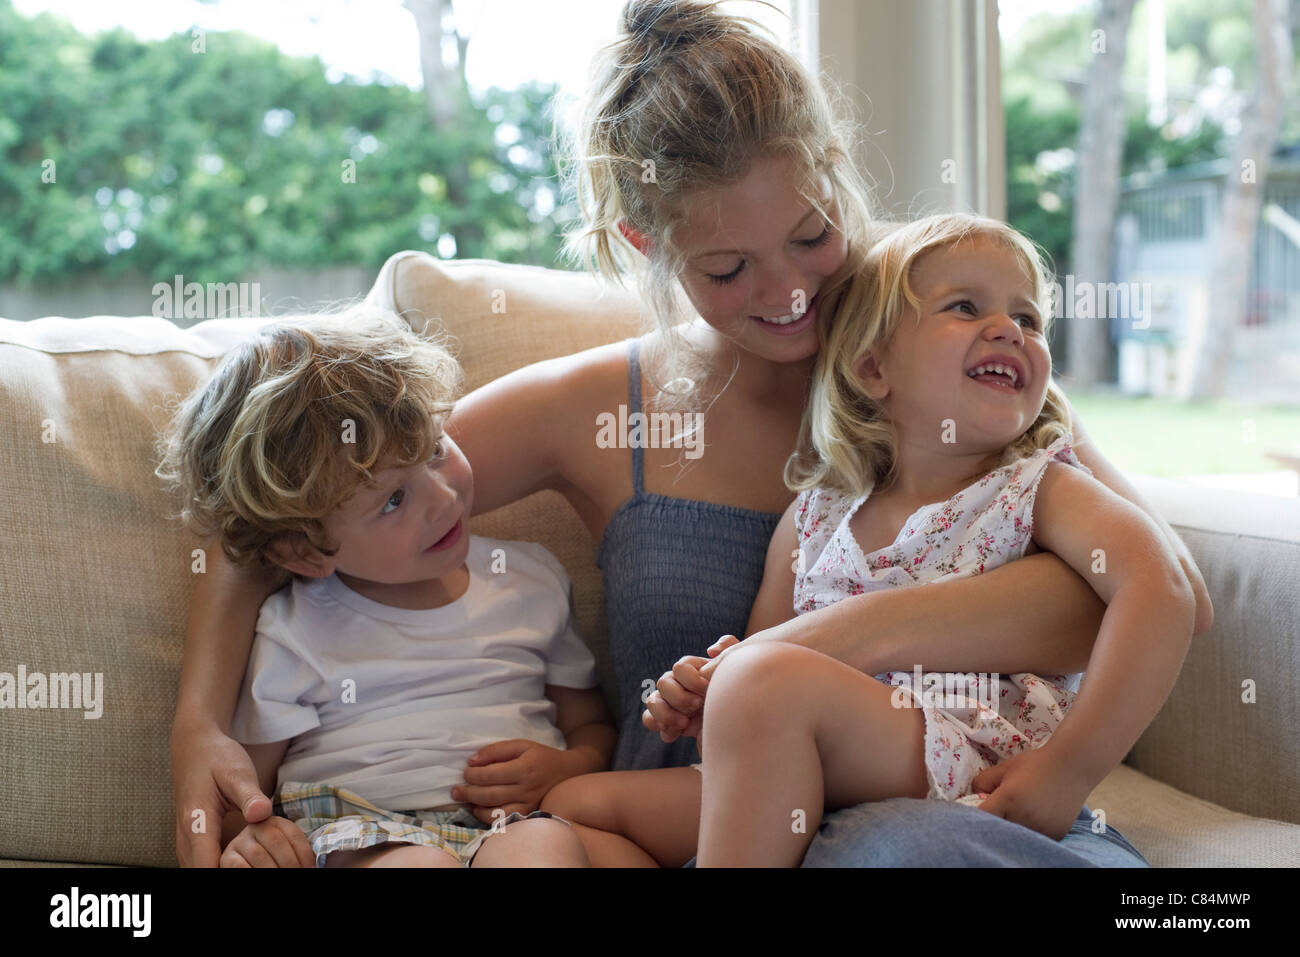 Mother and two young children cuddling on sofa - Stock Image